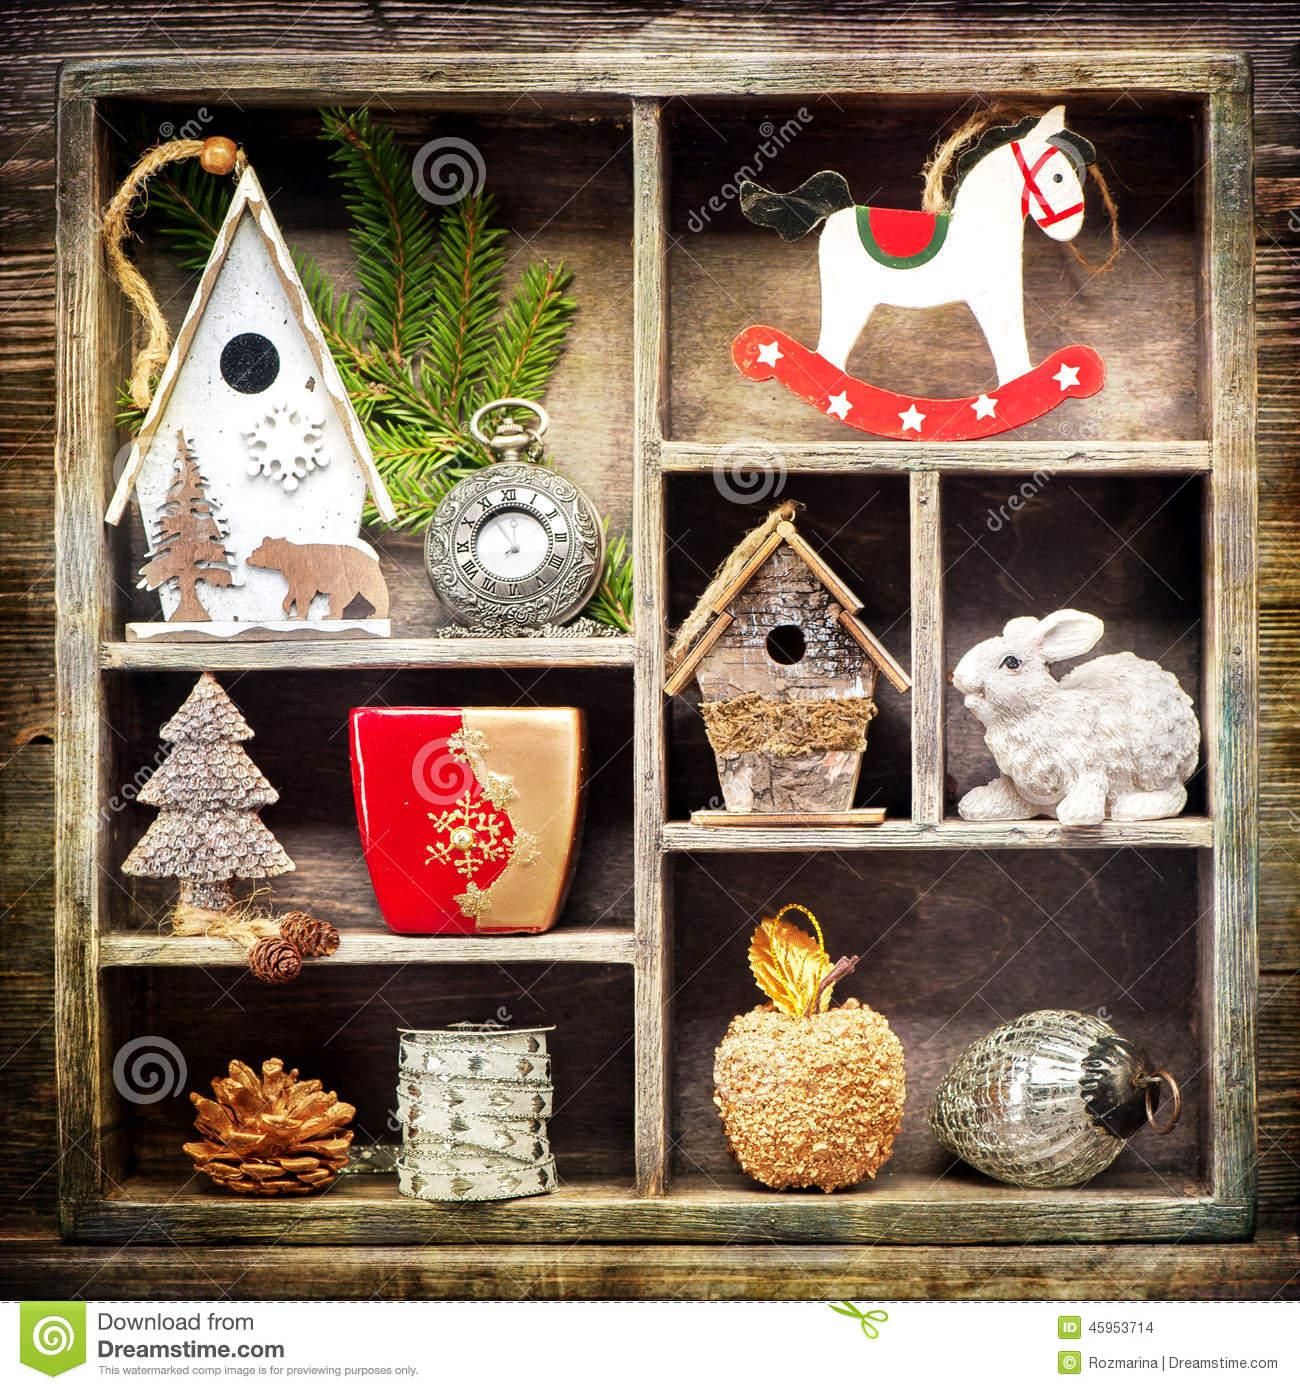 download christmas decorations antique clocks rocking horse and christmas toys stock photo - Horse Christmas Decorations